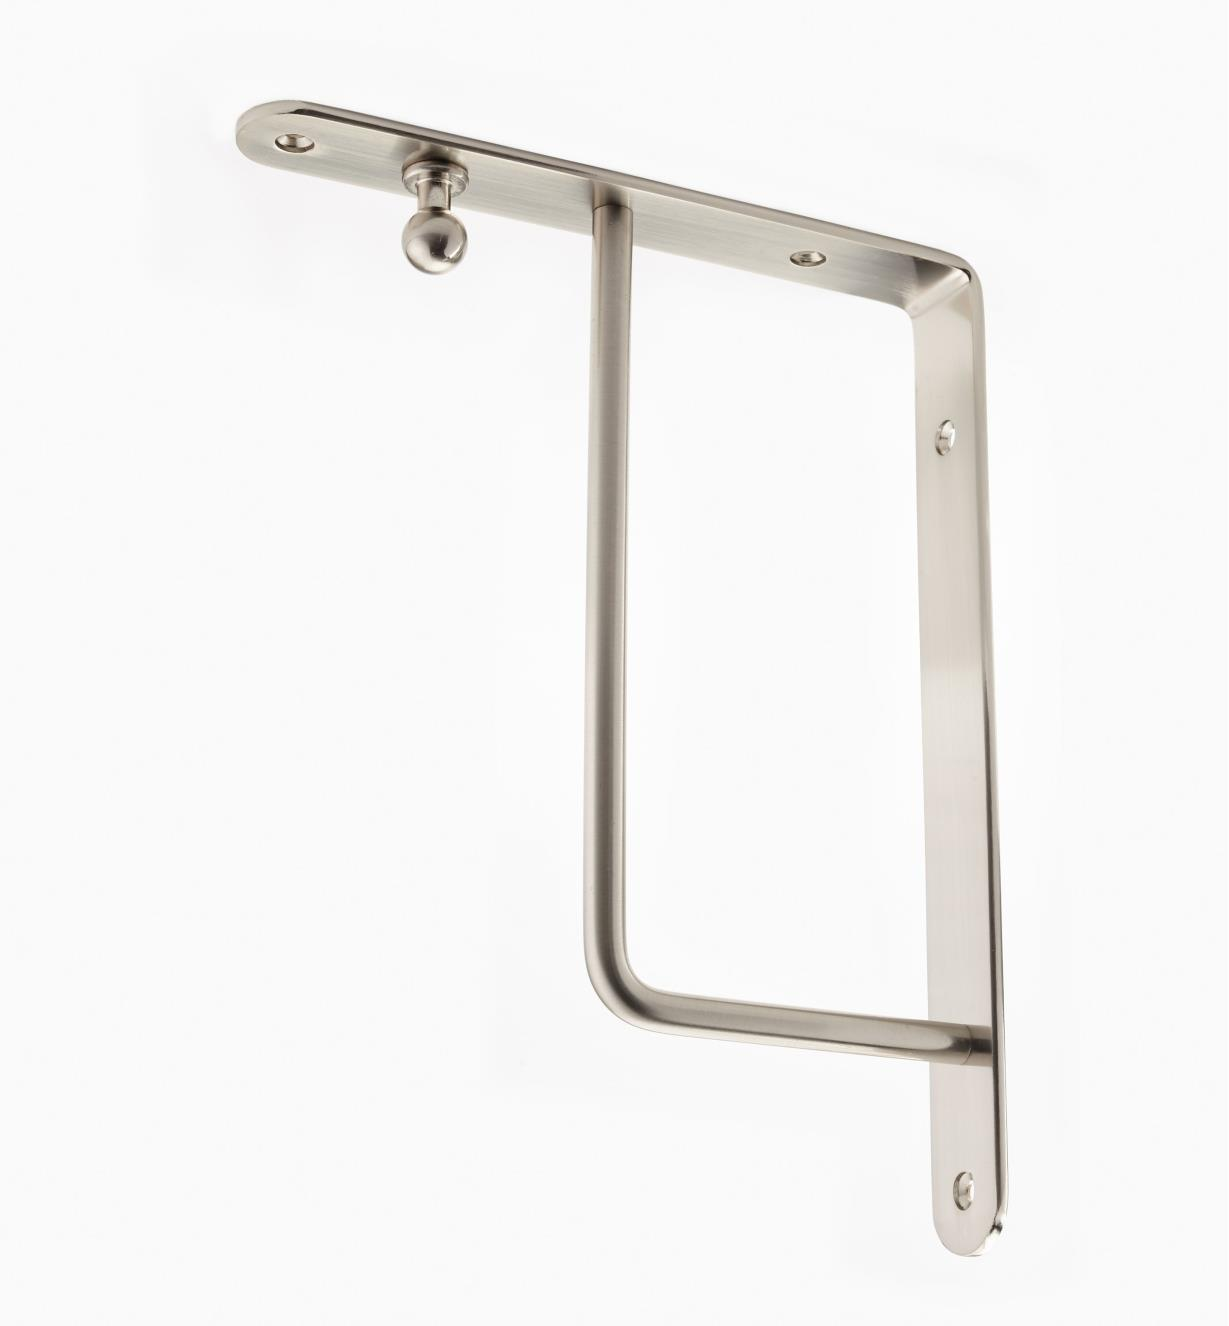 "00S0656 - Brushed Nickel Finish, Square Steel Shelf Bracket (9 3/4"" x 7 5/8""), ea."